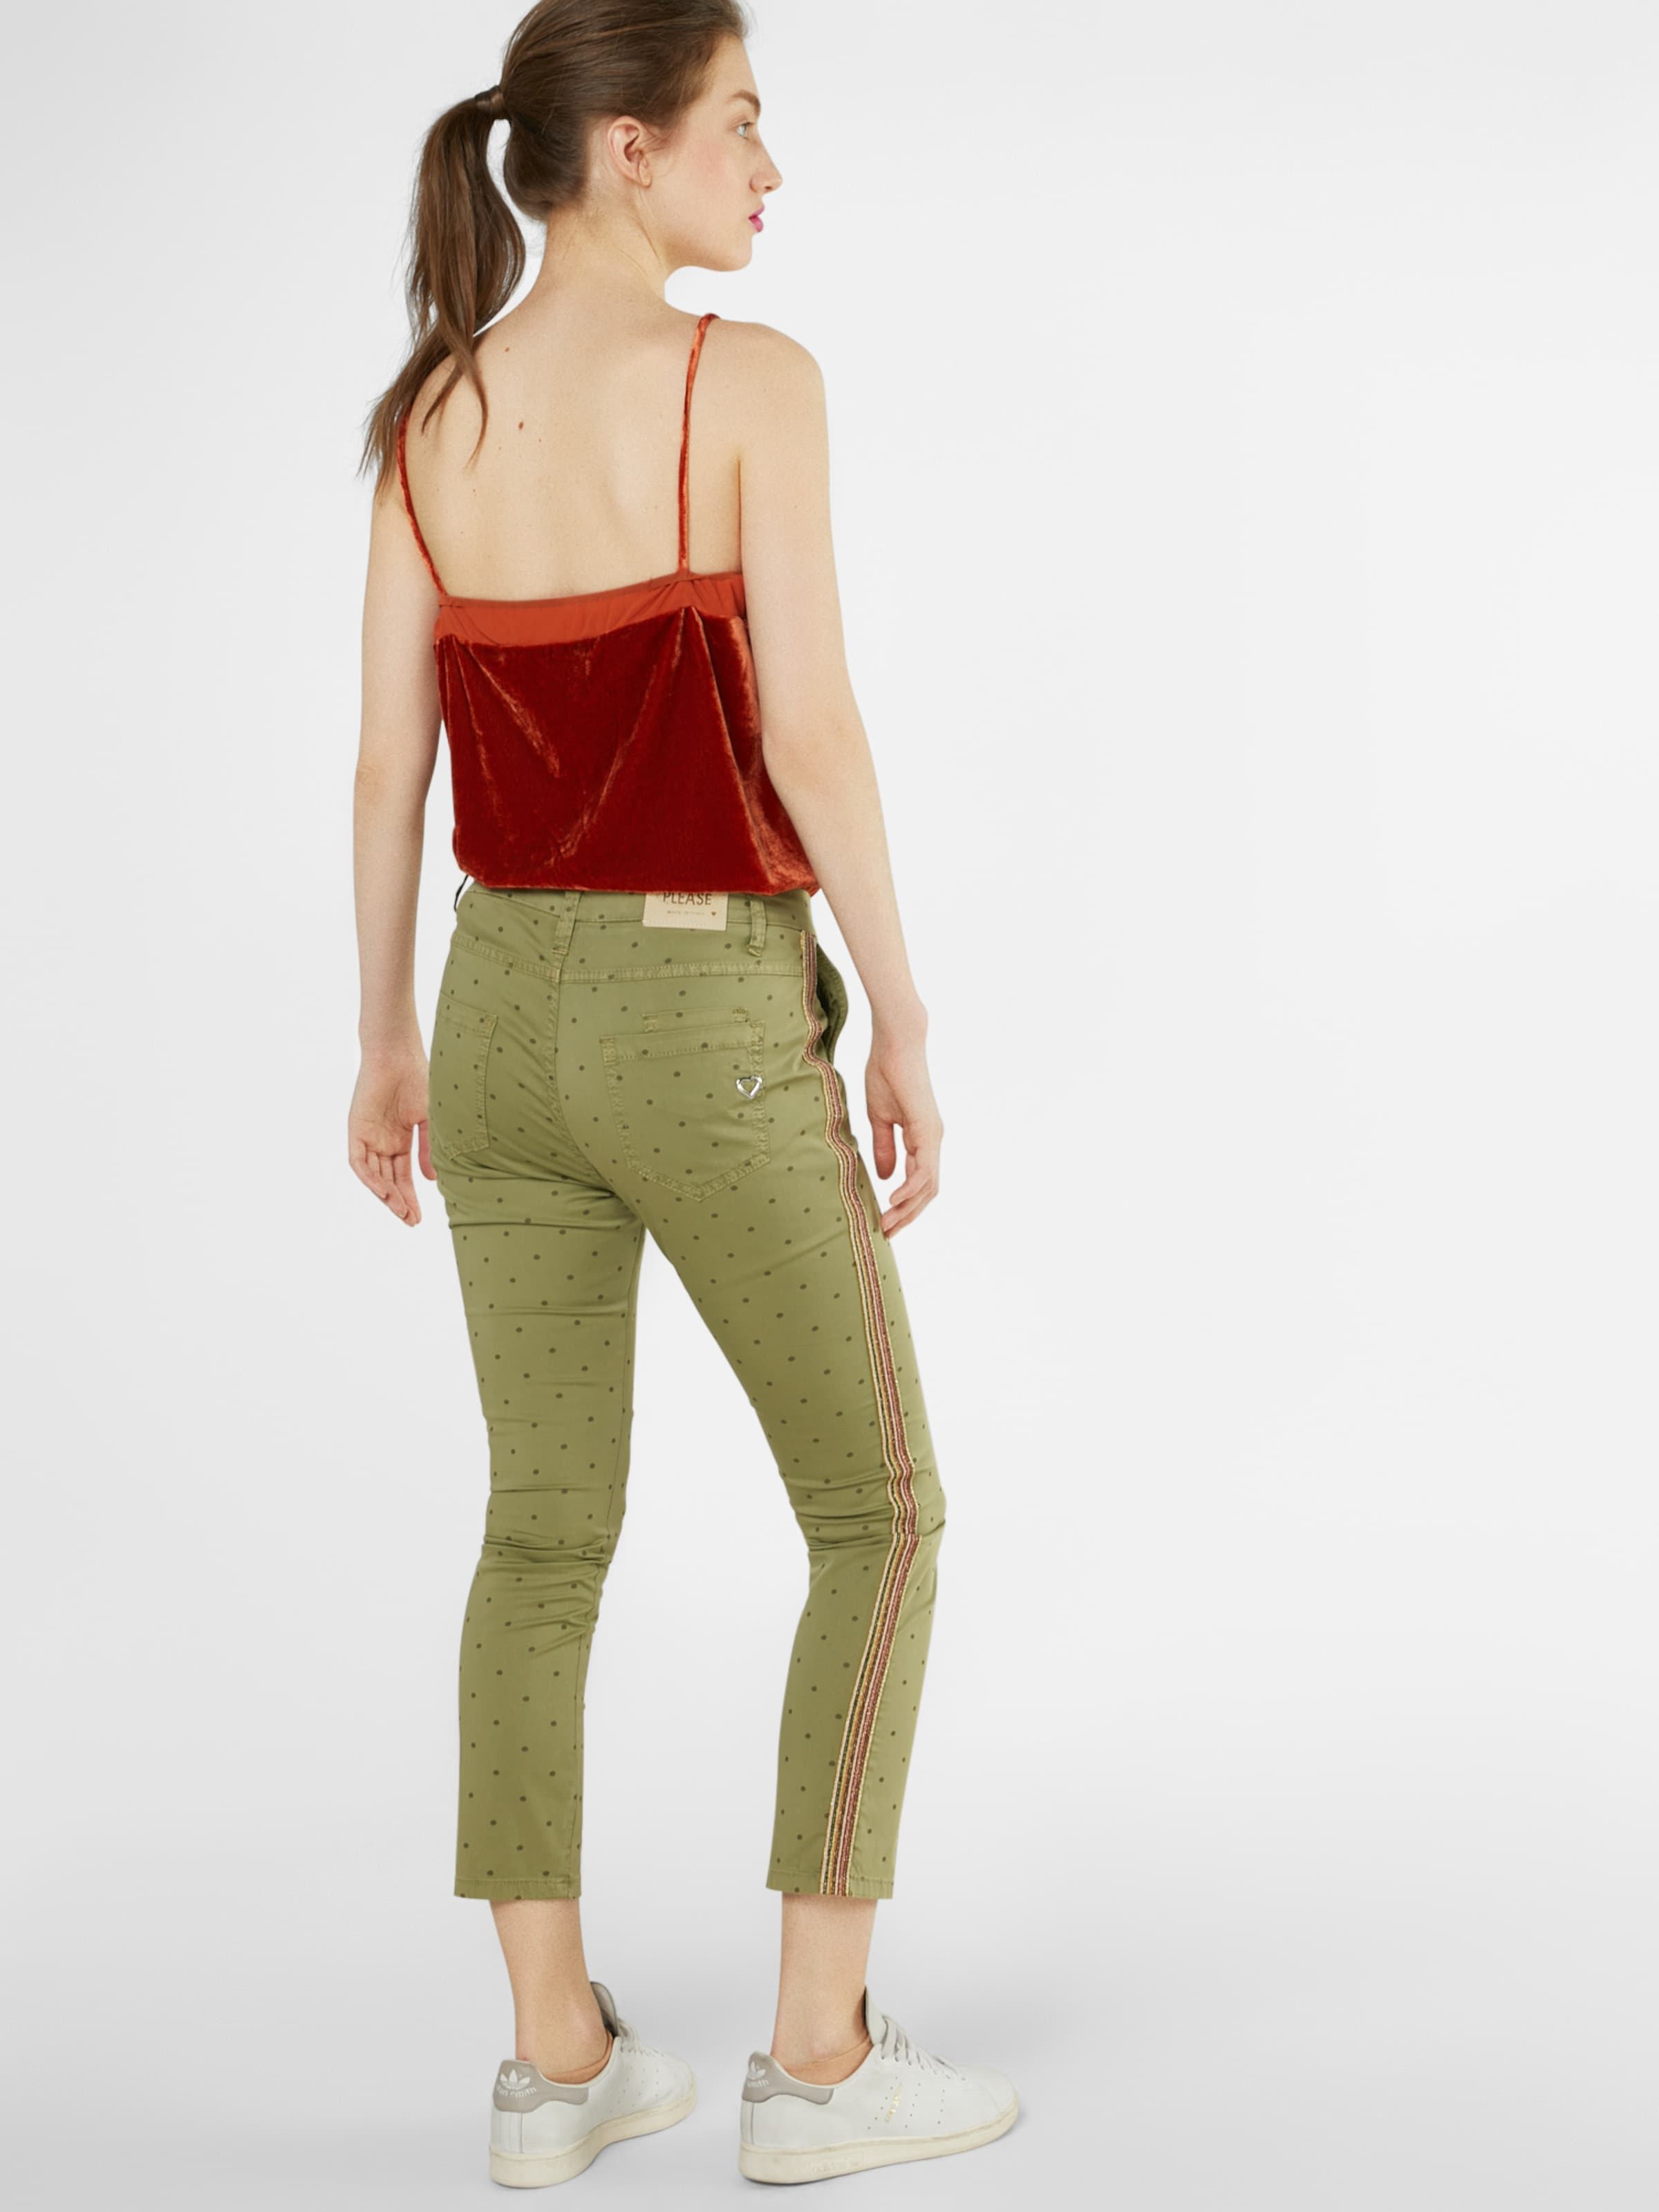 Please Pantalon Vert En Please Please Vert Vert En Please Pantalon Pantalon En Pantalon En qUzMSVp